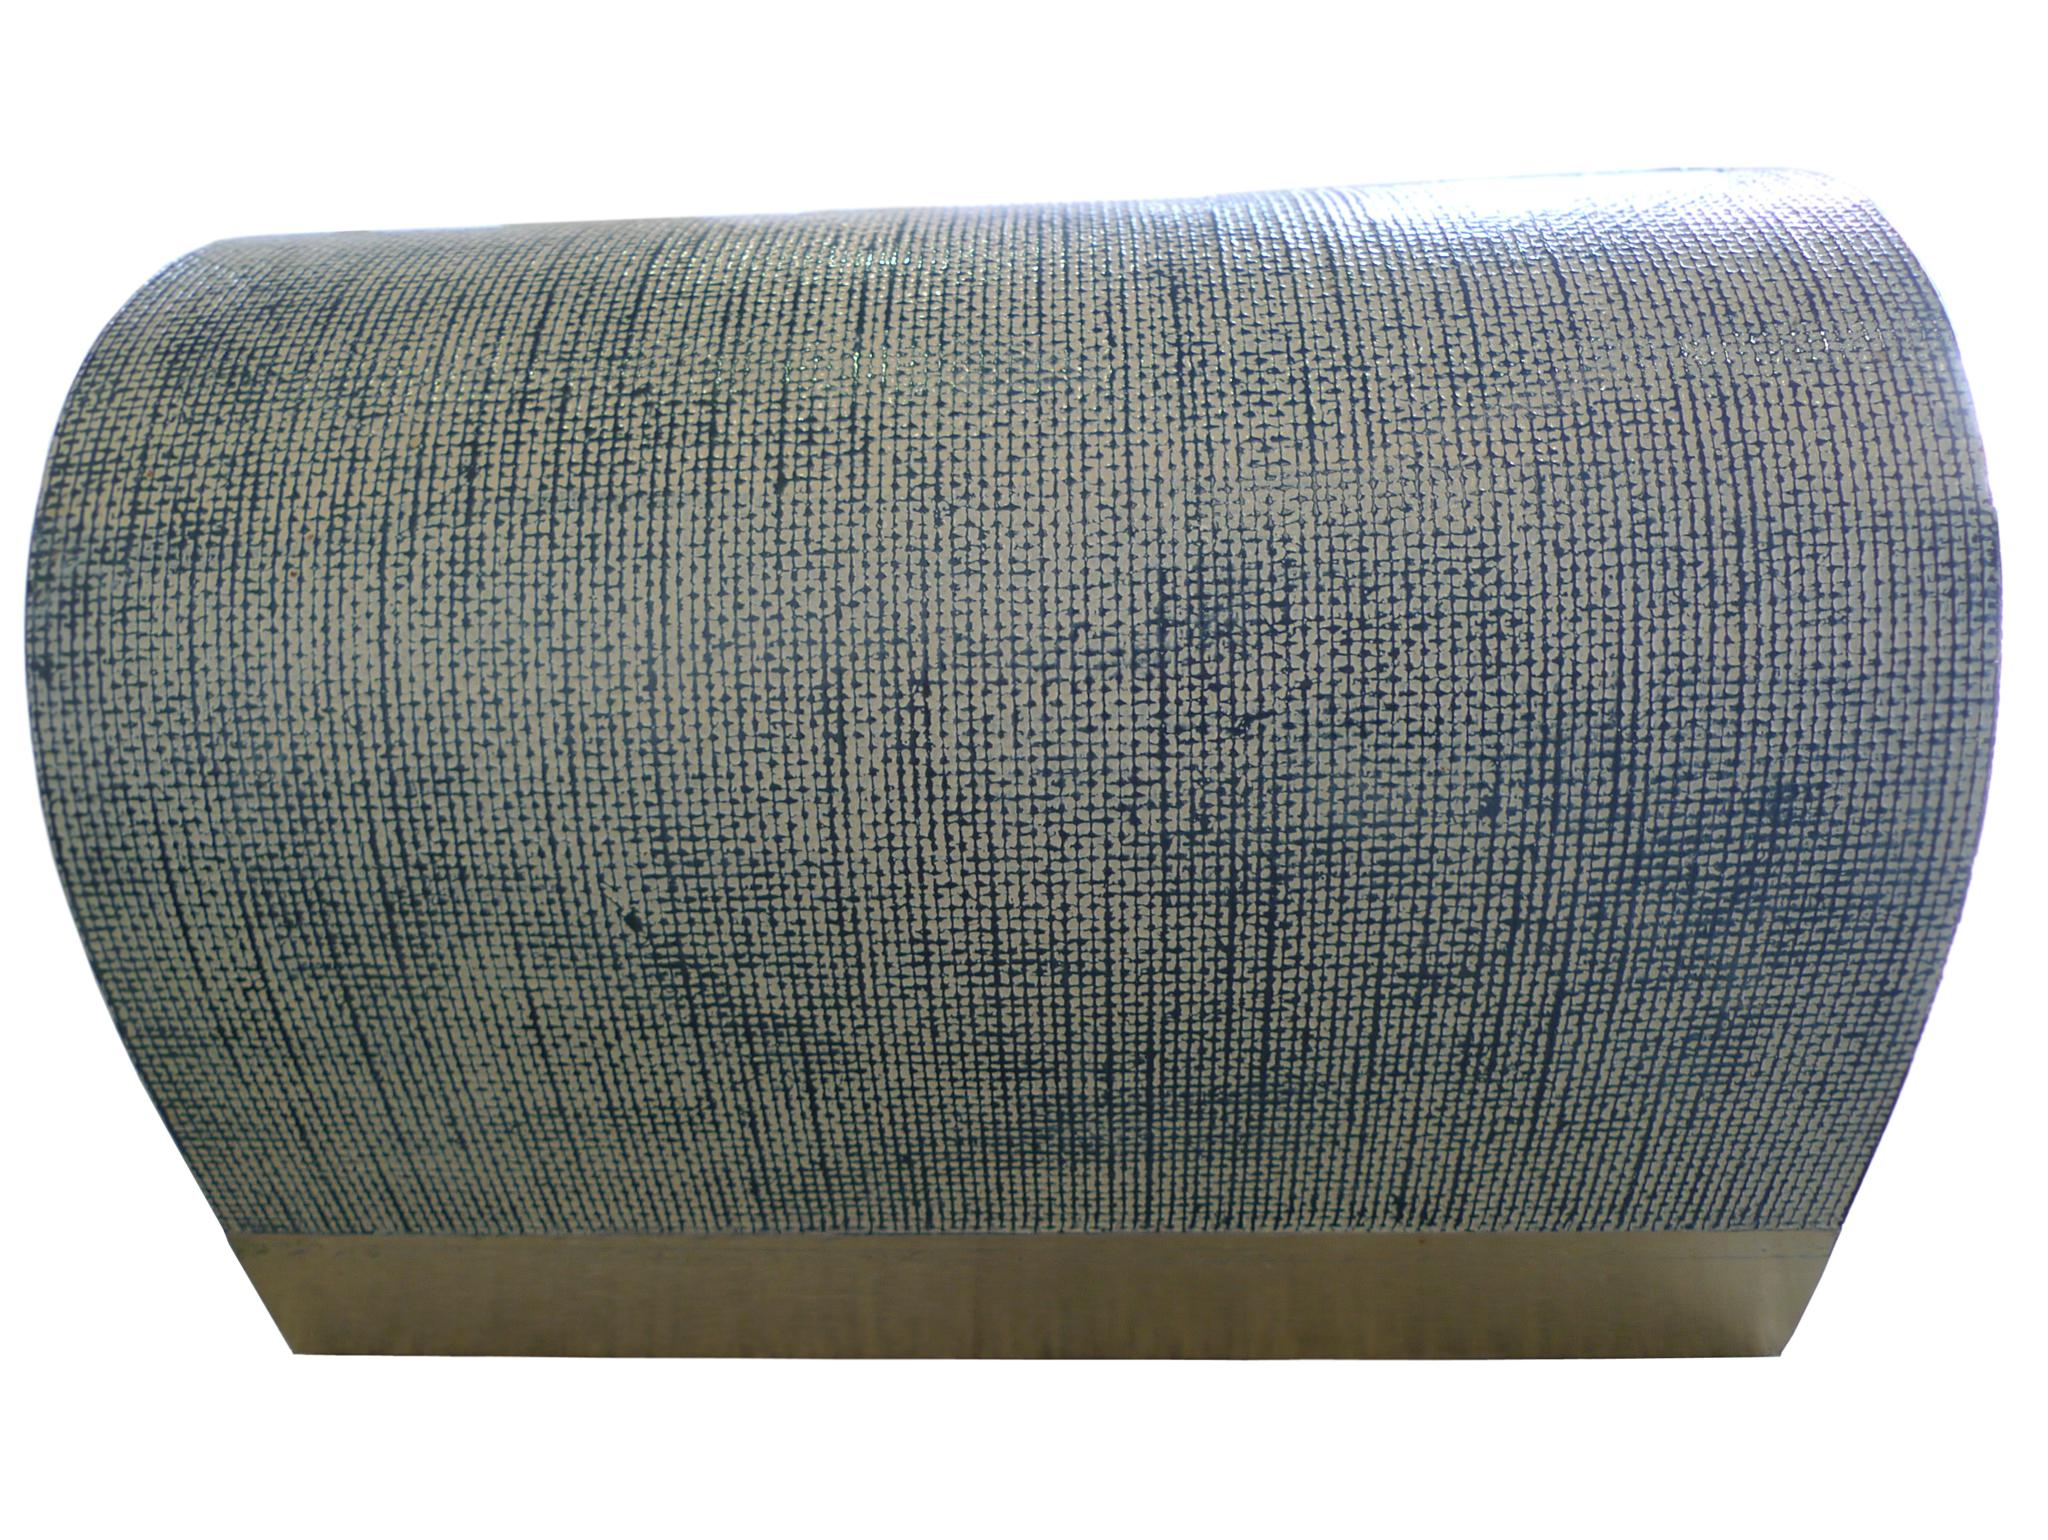 MidCentury Karl Springer Style Linen Wrapped Coffee Table Chairish